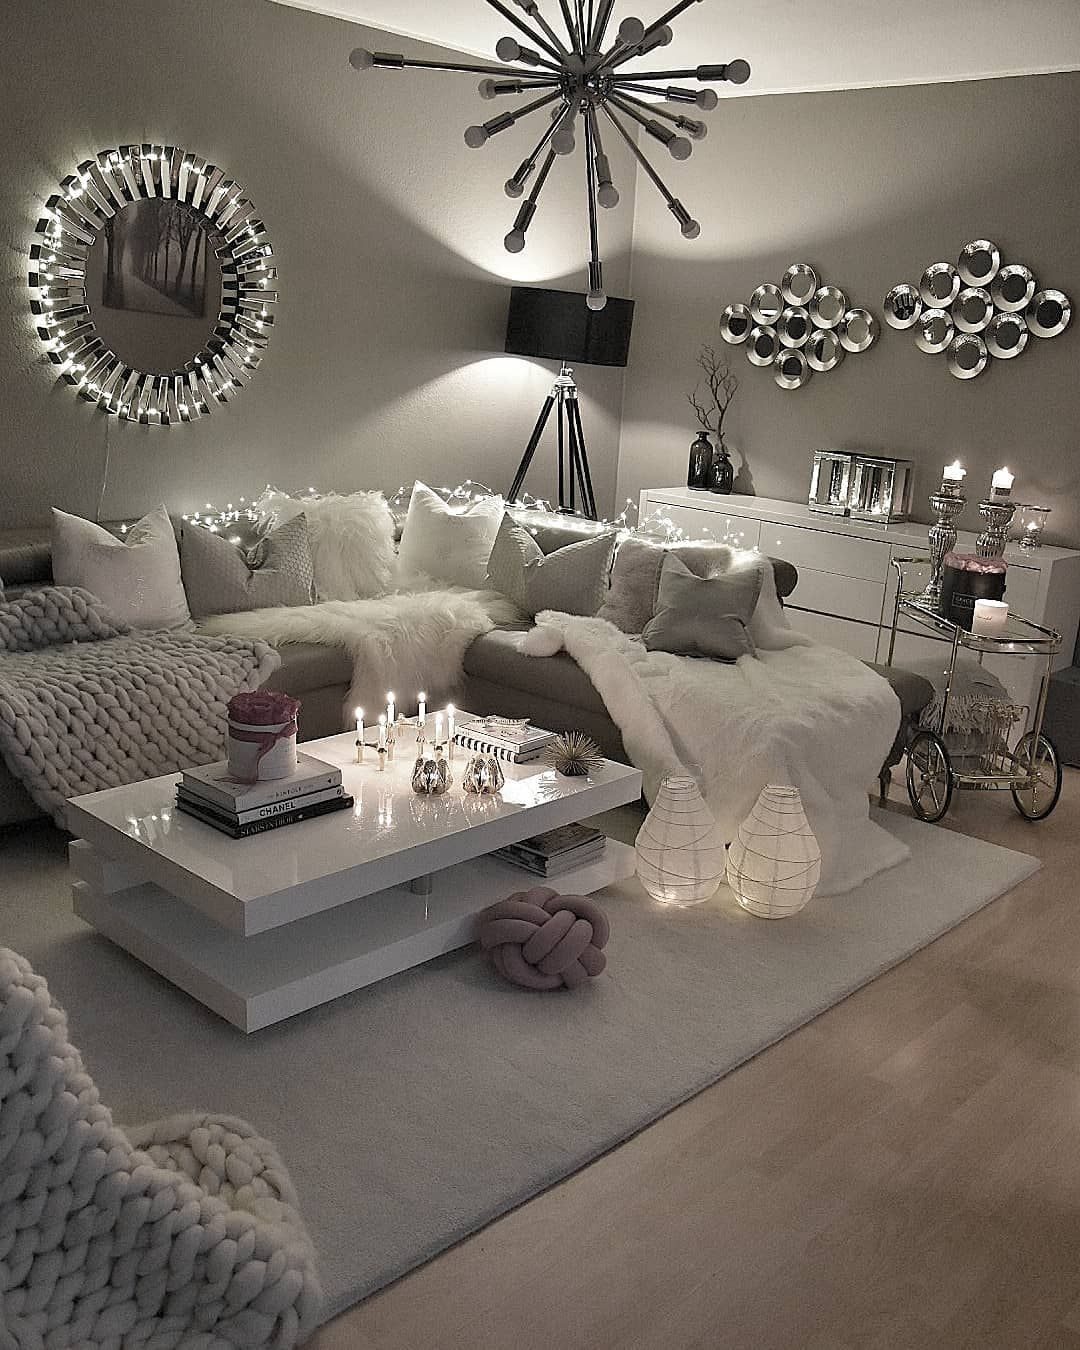 7 Apartment Decorating And Small Living Room Ideas: Pin Do(a) Mquezada11 Em Apartment De 2019